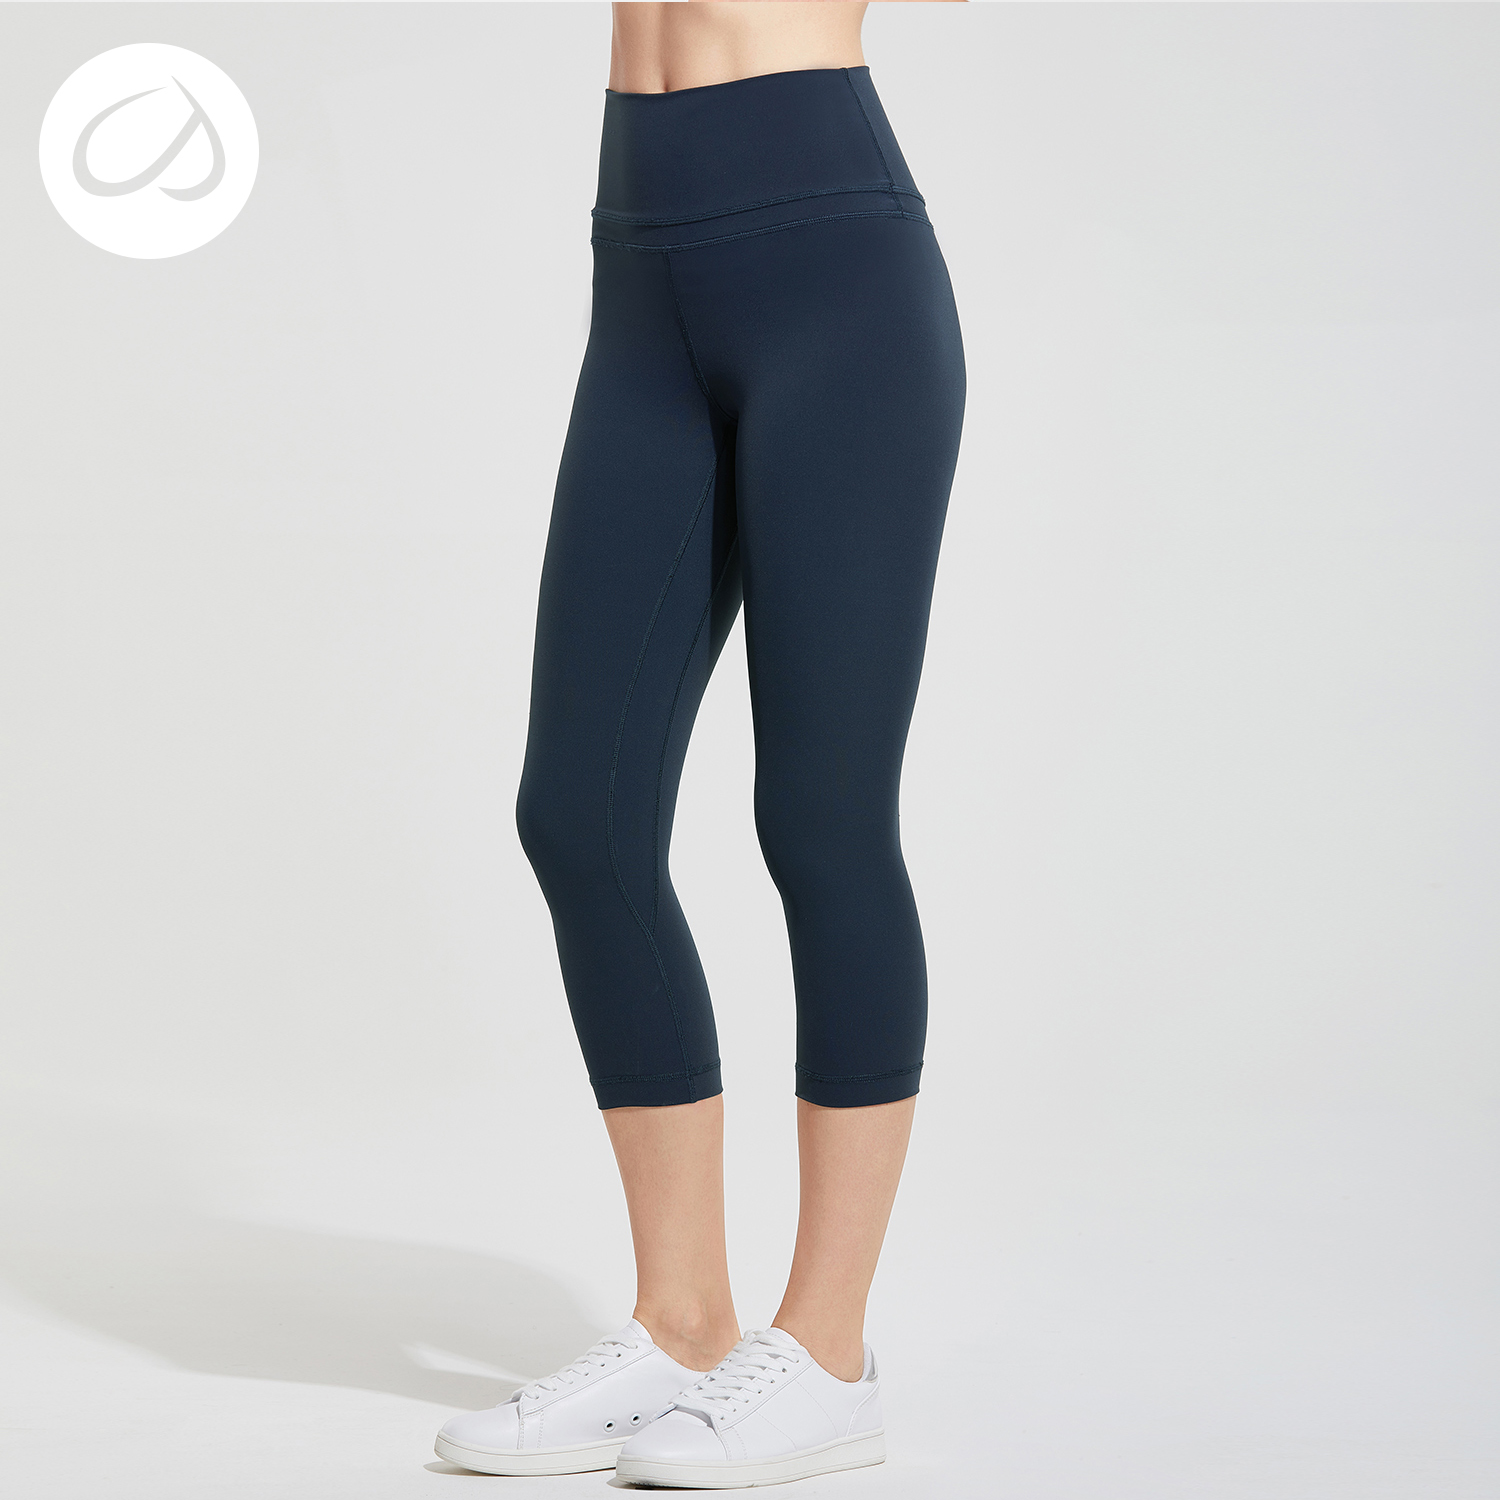 Crz Yoga Womens Naked Feeling High Waist Active Pants Cropped Tights Yoga Capri-In -9031